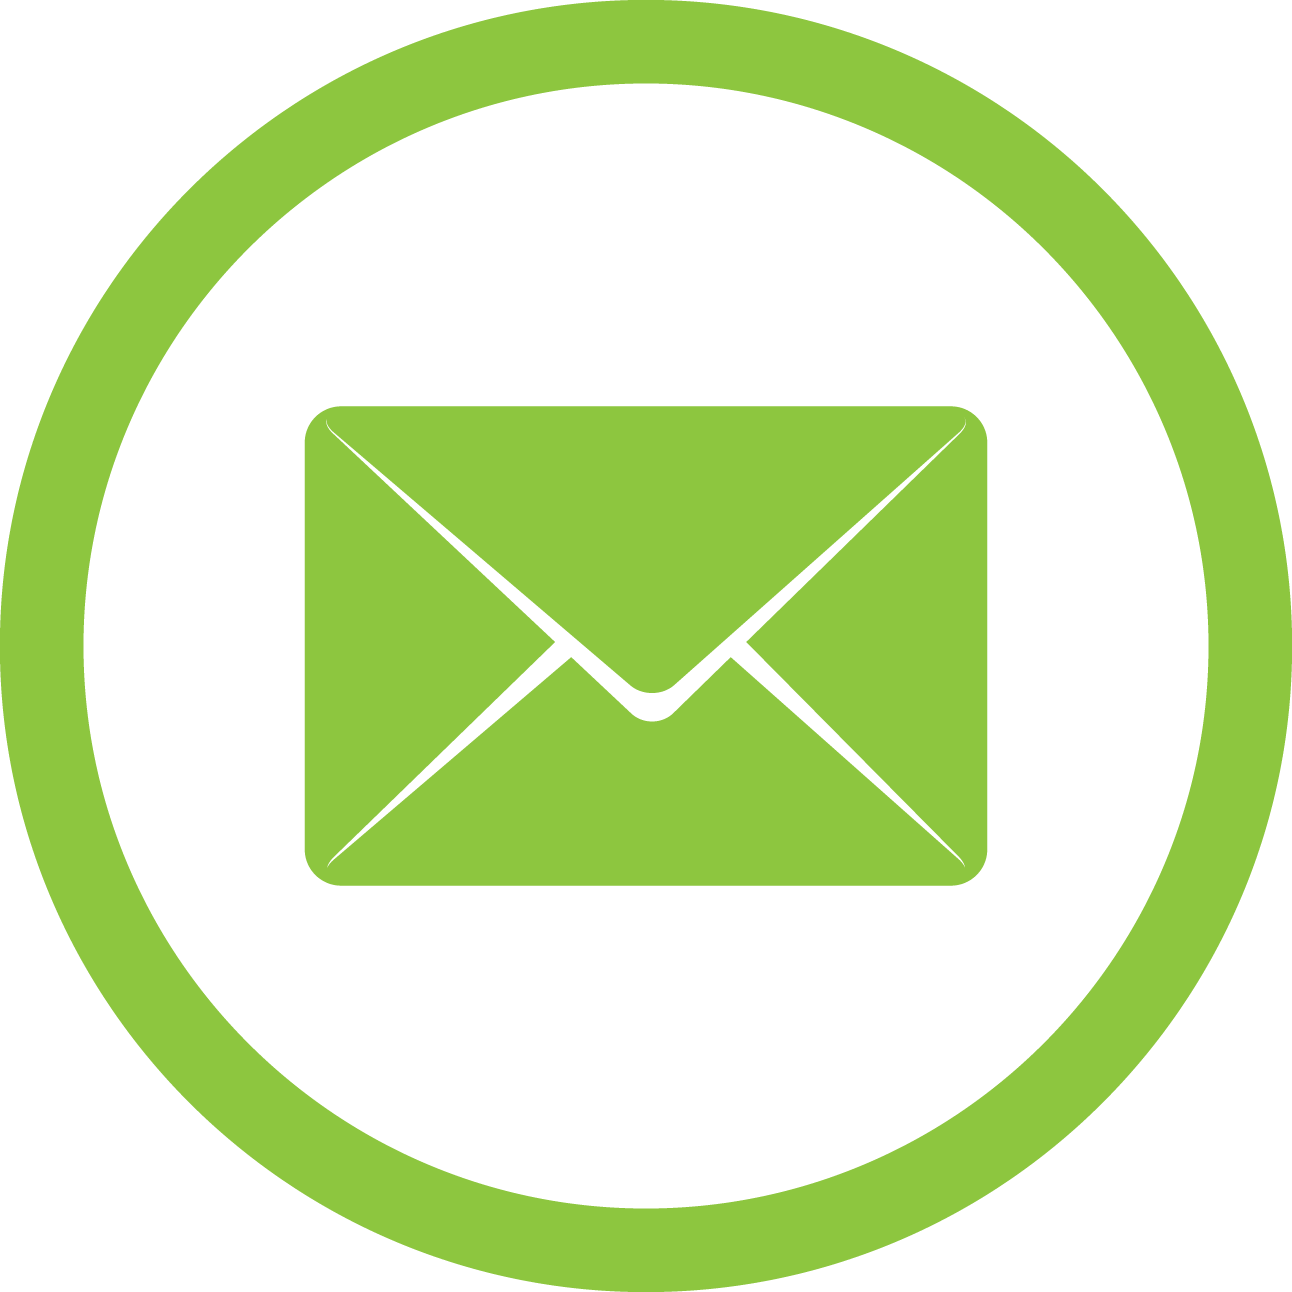 Email_green.png